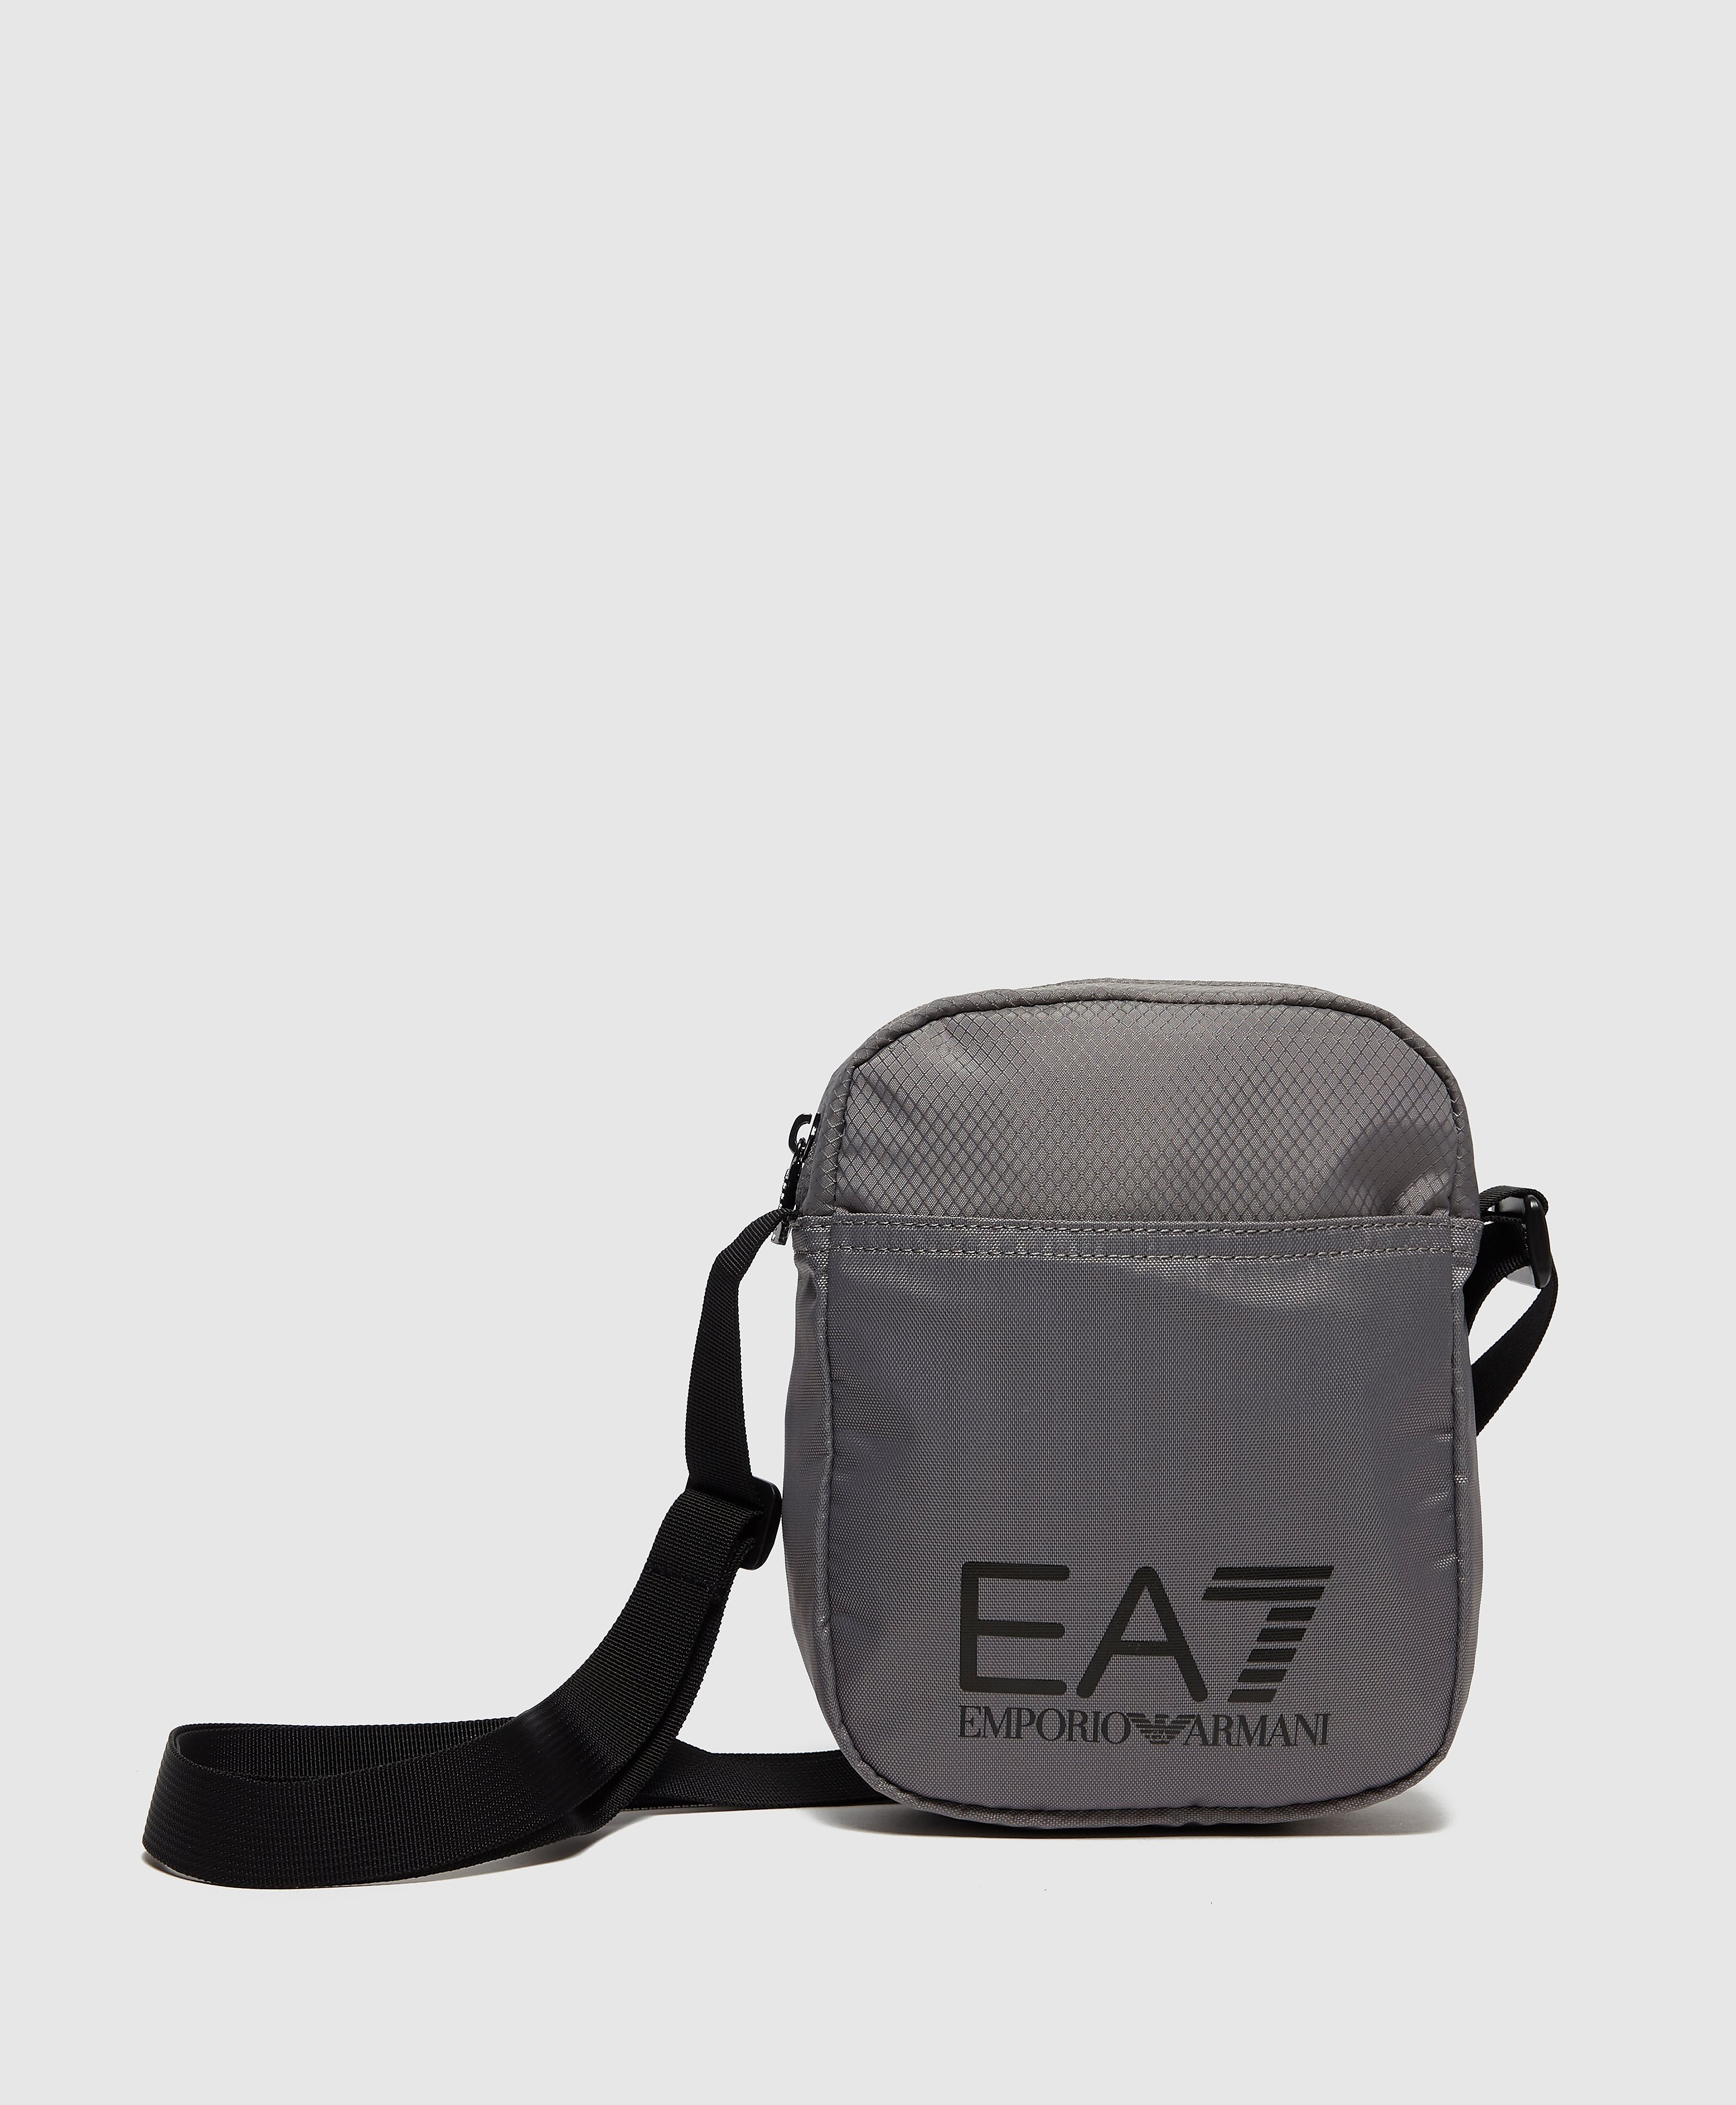 Emporio Armani EA7 Train Logo Small Bag